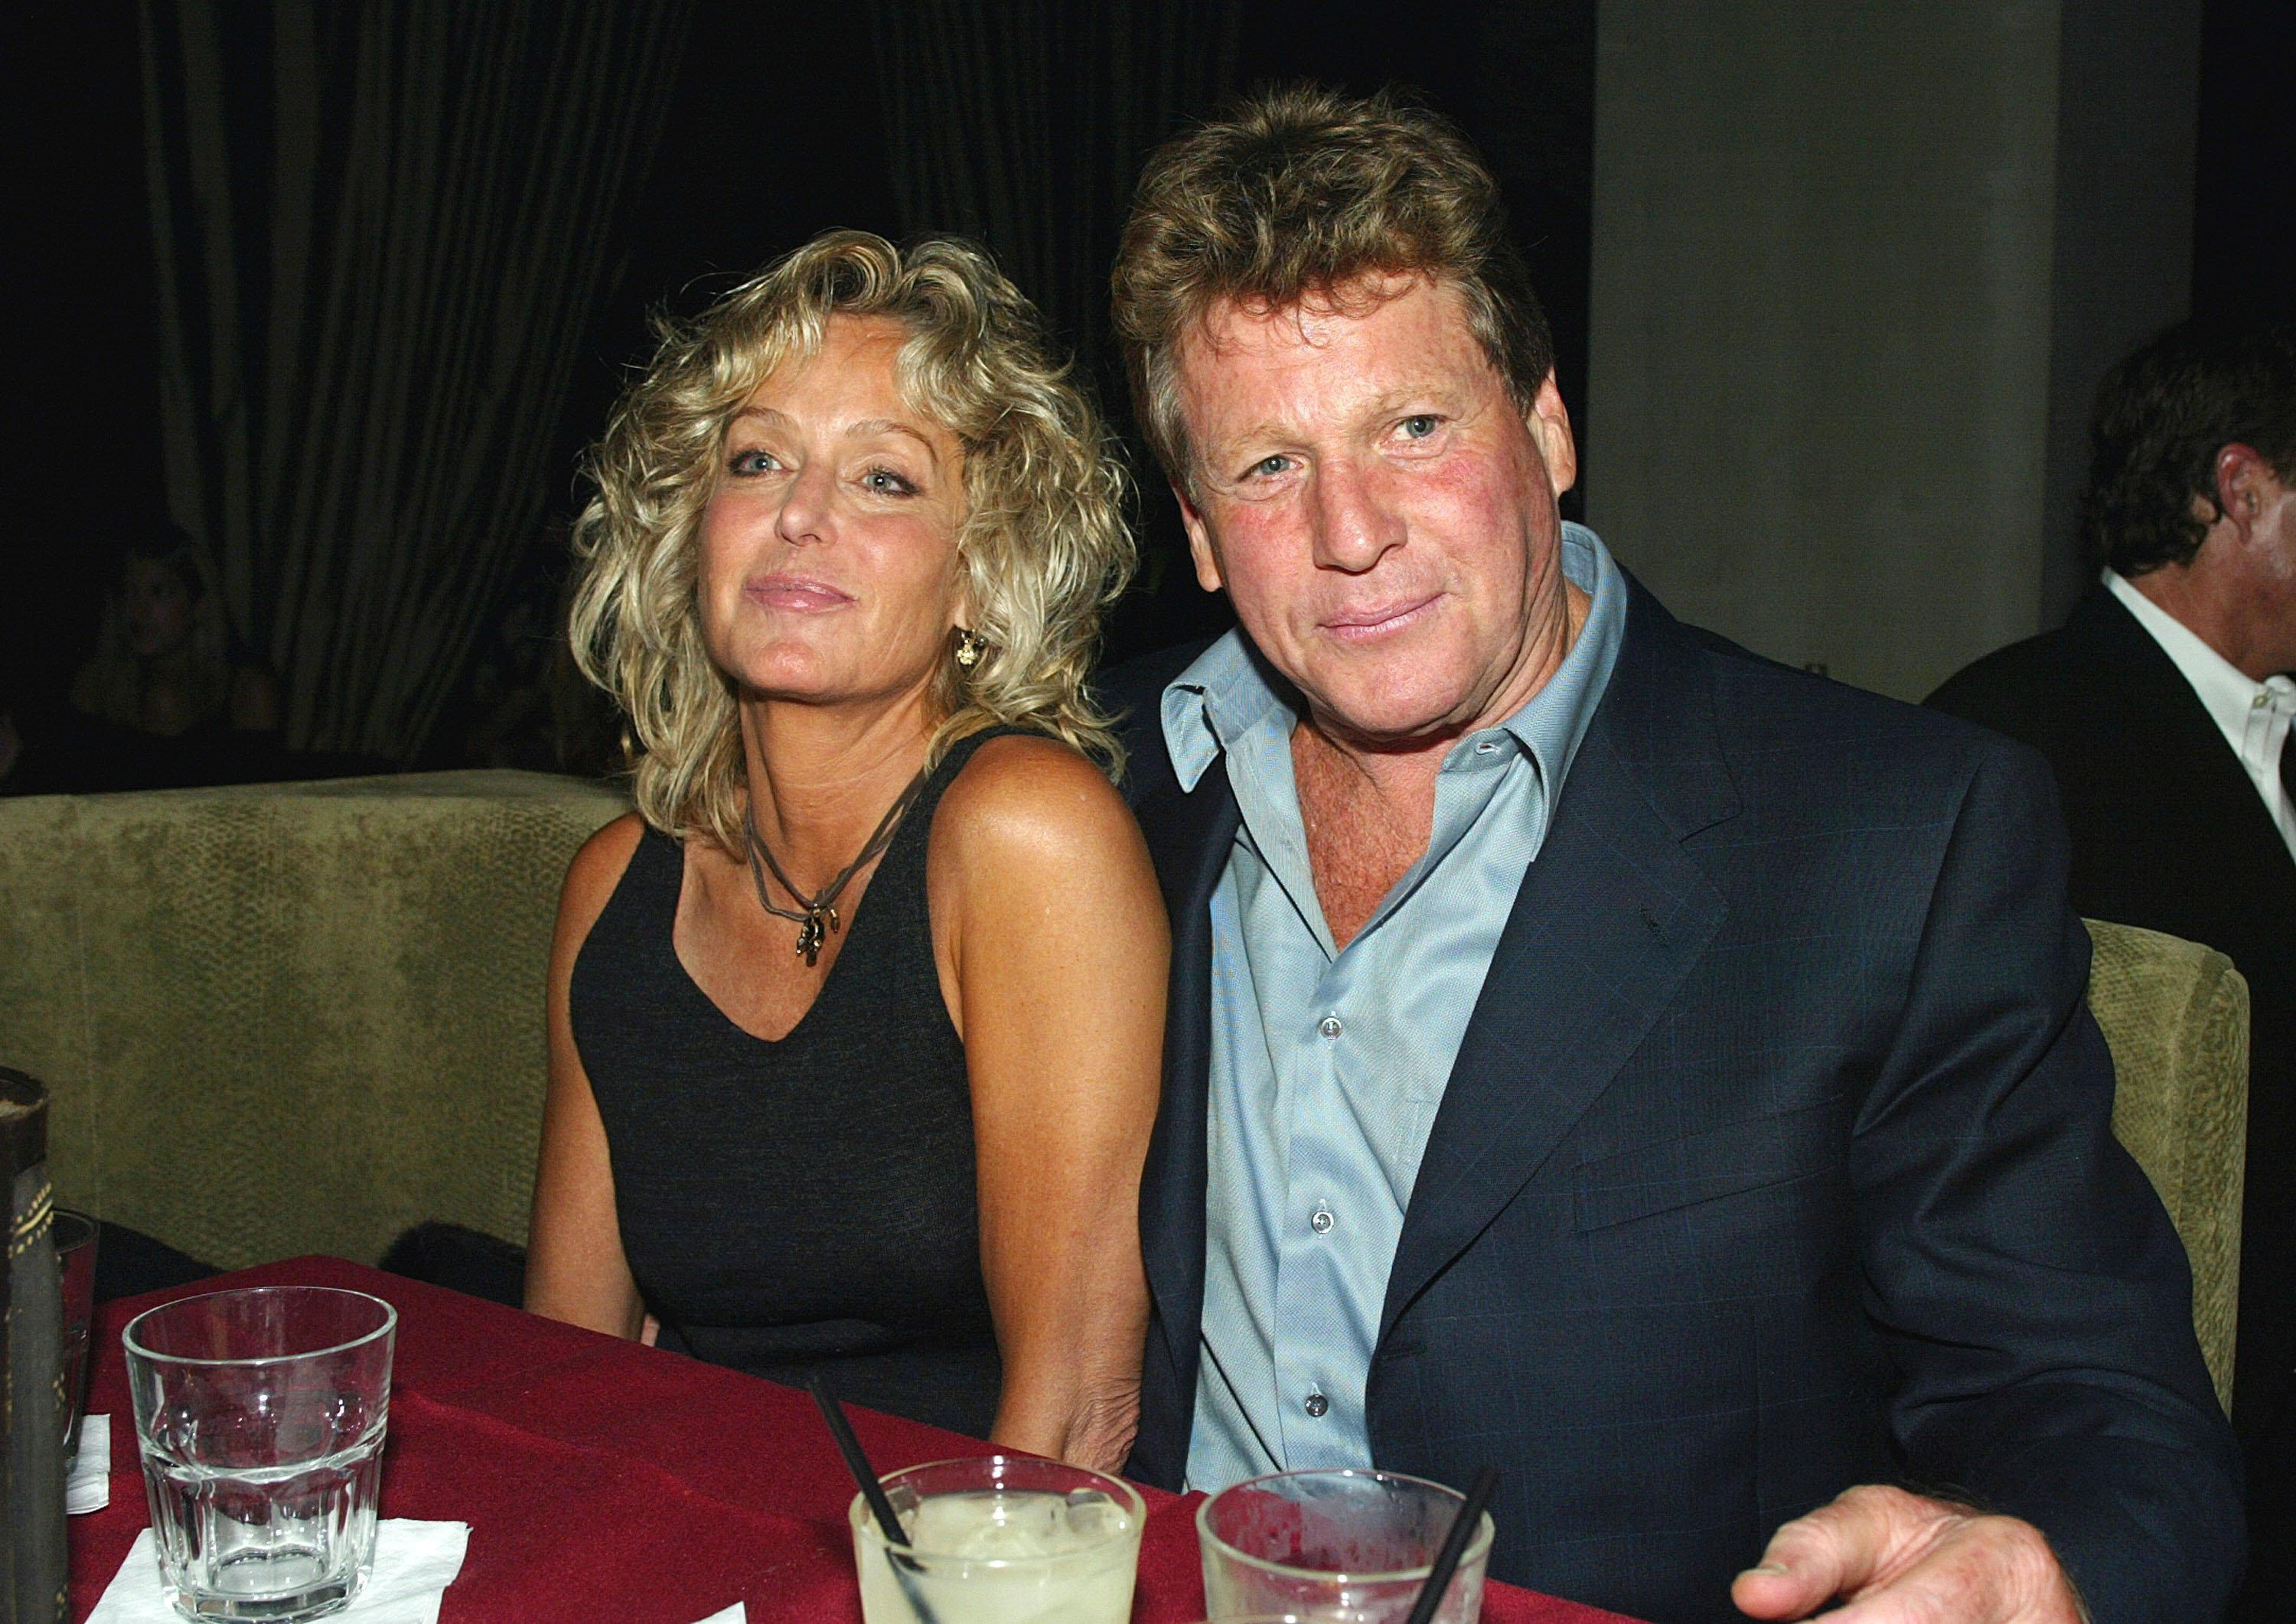 Farrah Fawcett and Ryan O'Neal at the Highlands on April 10, 2003 in Los Angeles, California. | Photo: Getty Images